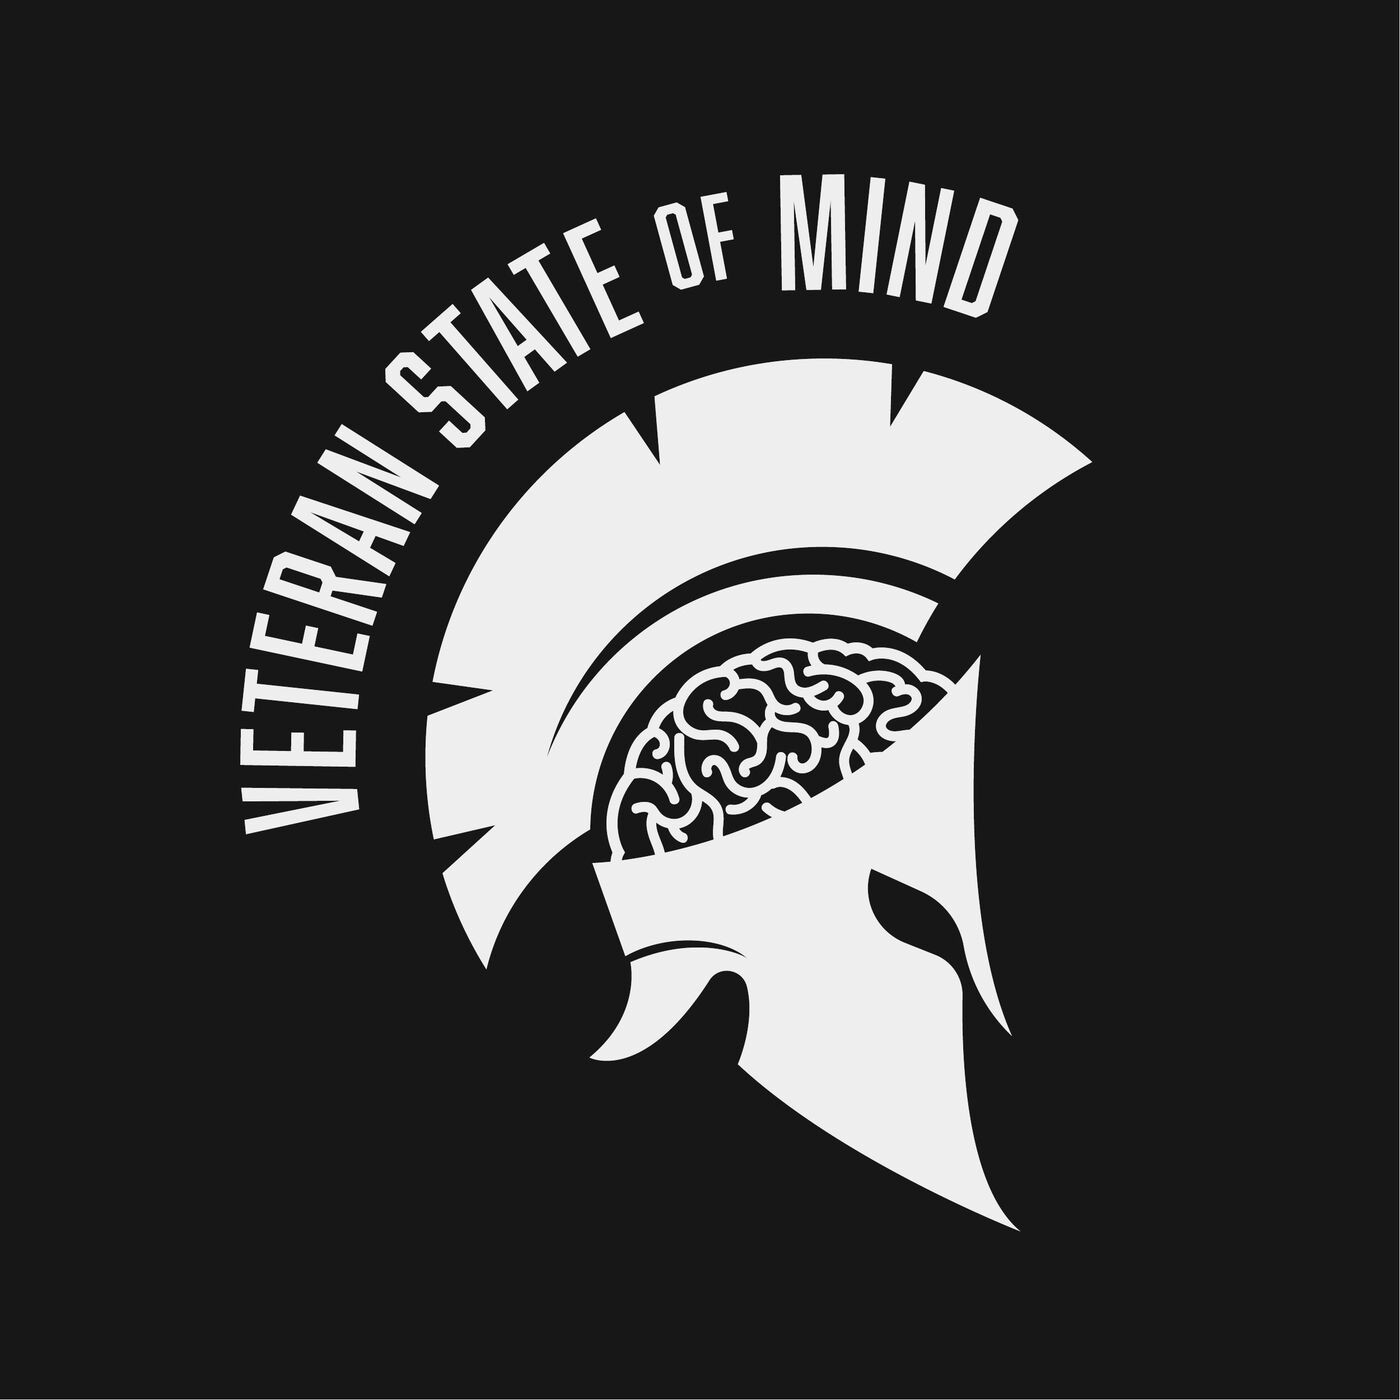 Veteran State of Mind, Episode 006: Live from New York, with my boy Seabass